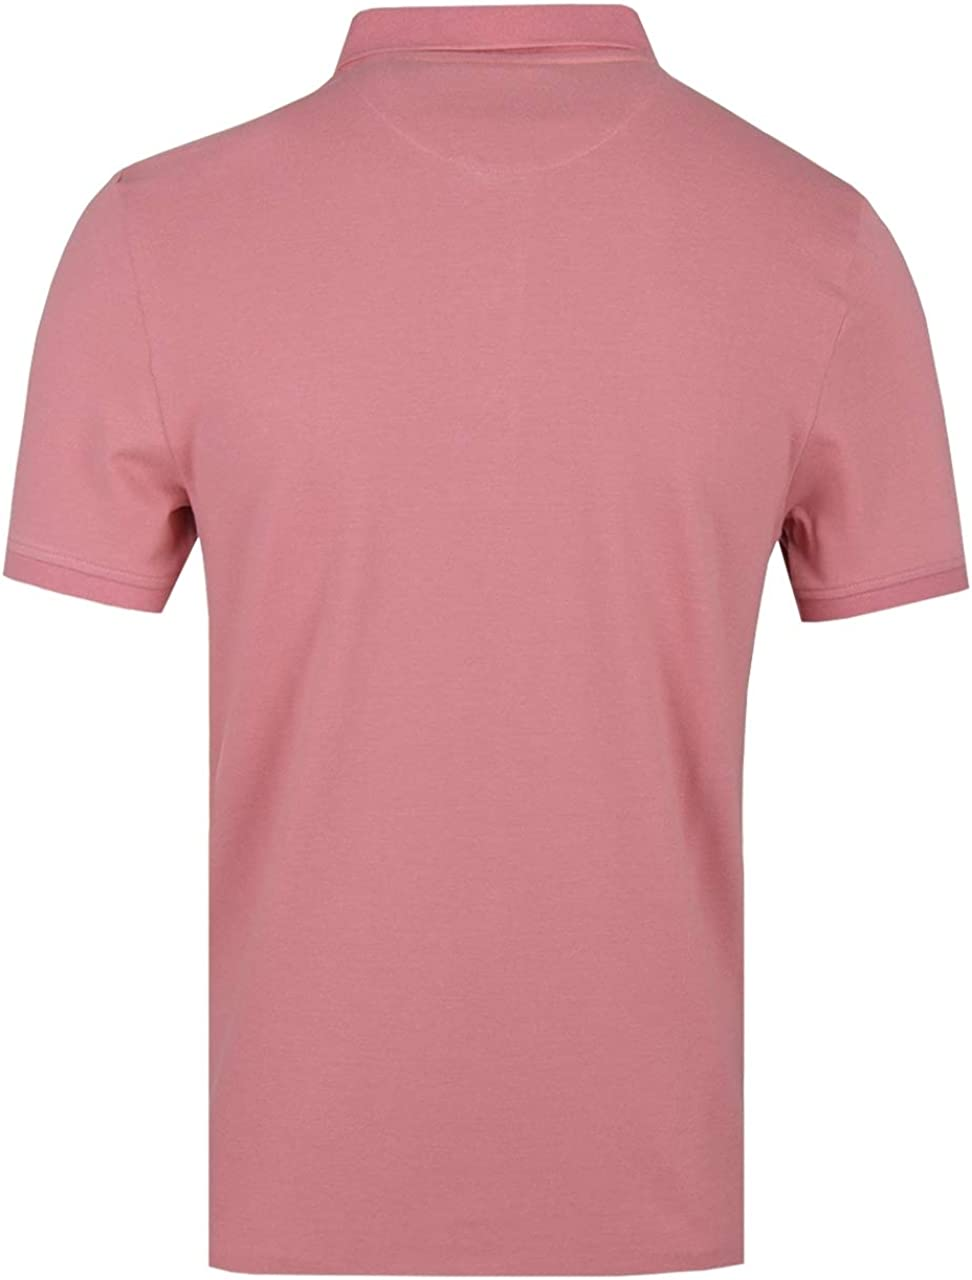 Lyle and Scott - Plain Polo, Pink Shadow Pink Shadow